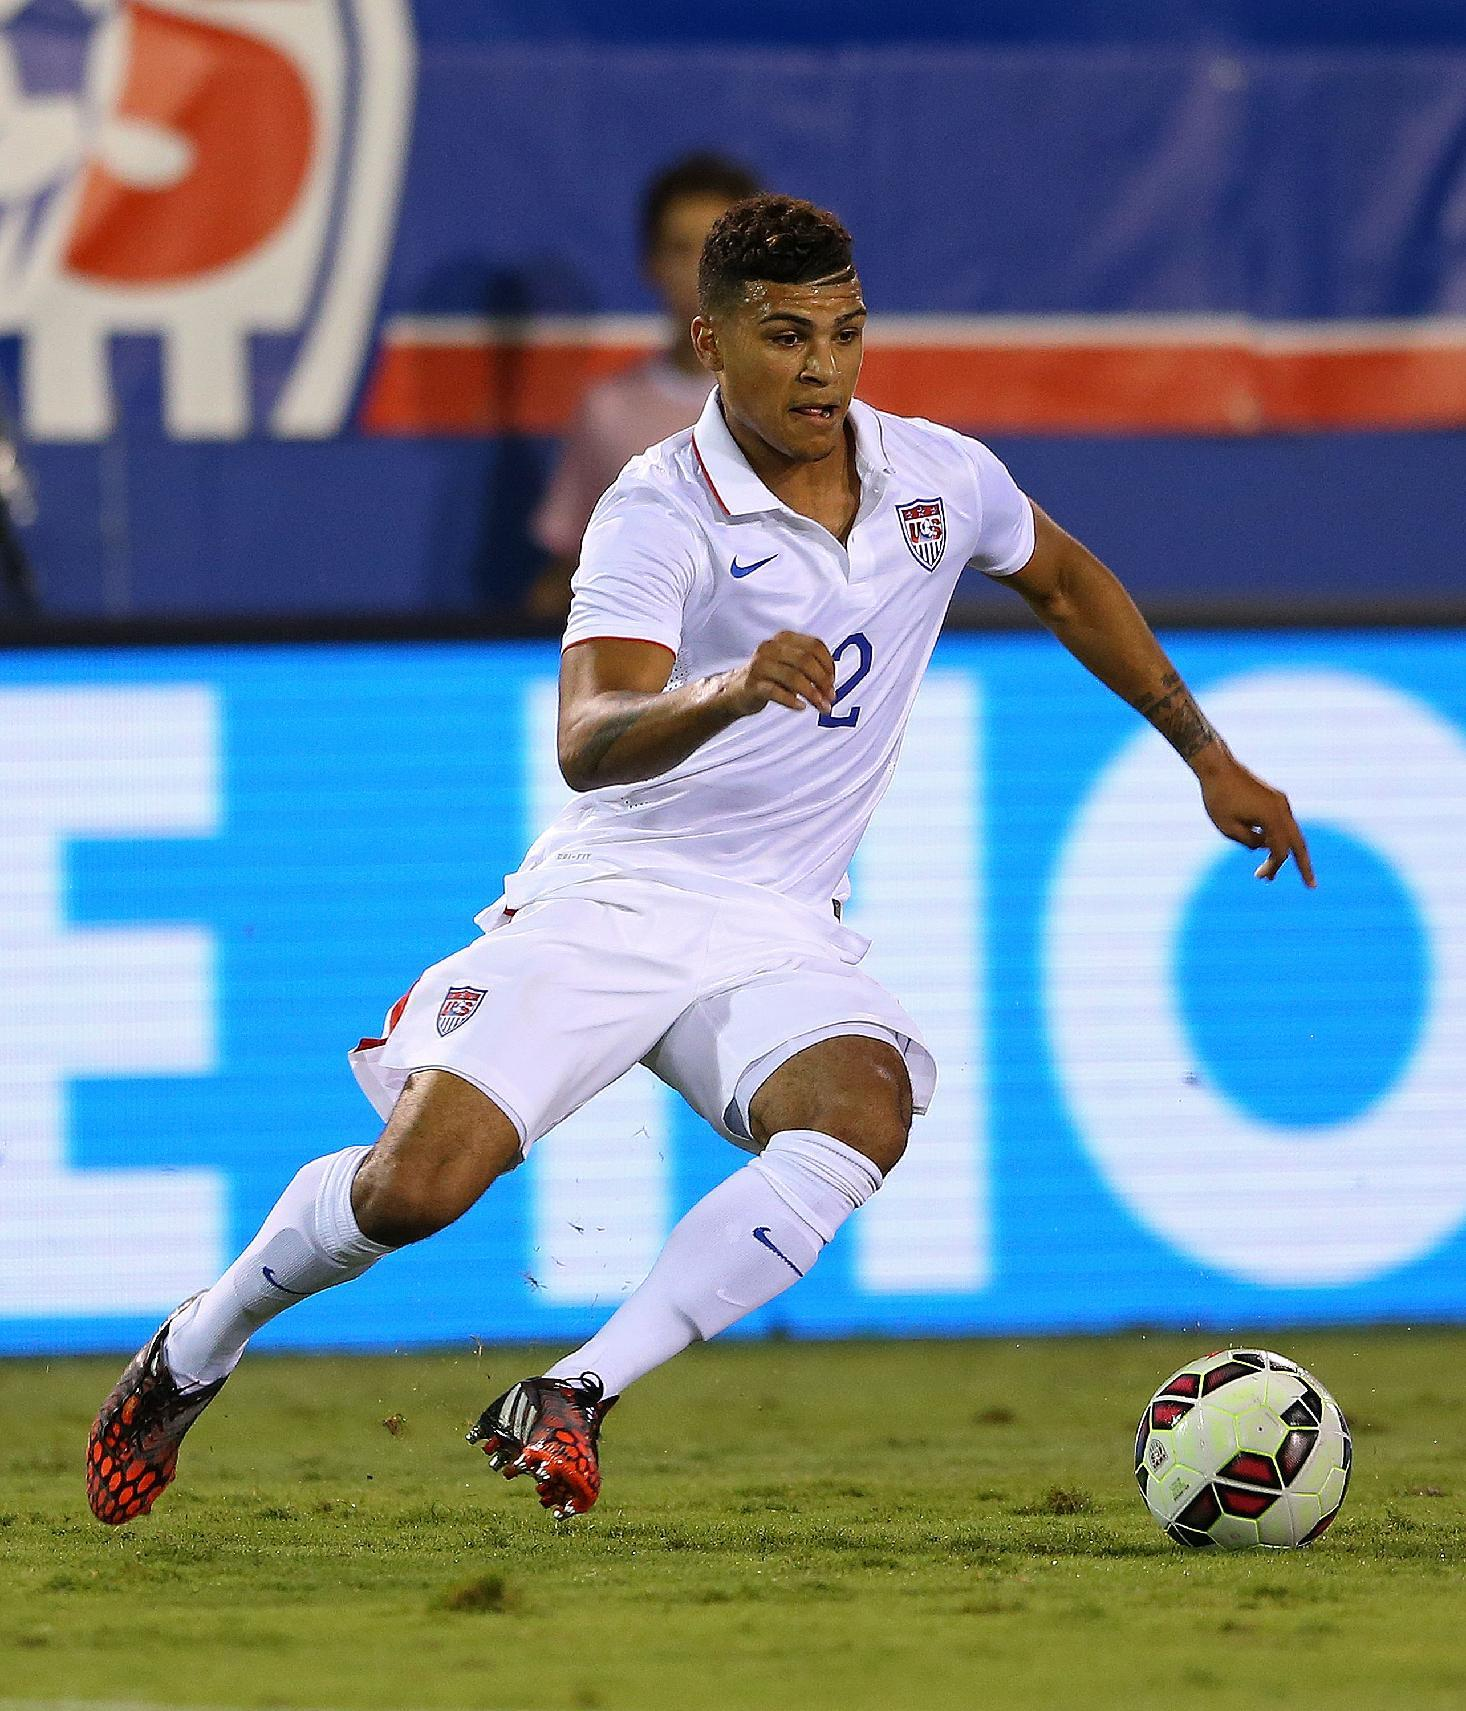 Tottenham's Yedlin to join US for friendlies